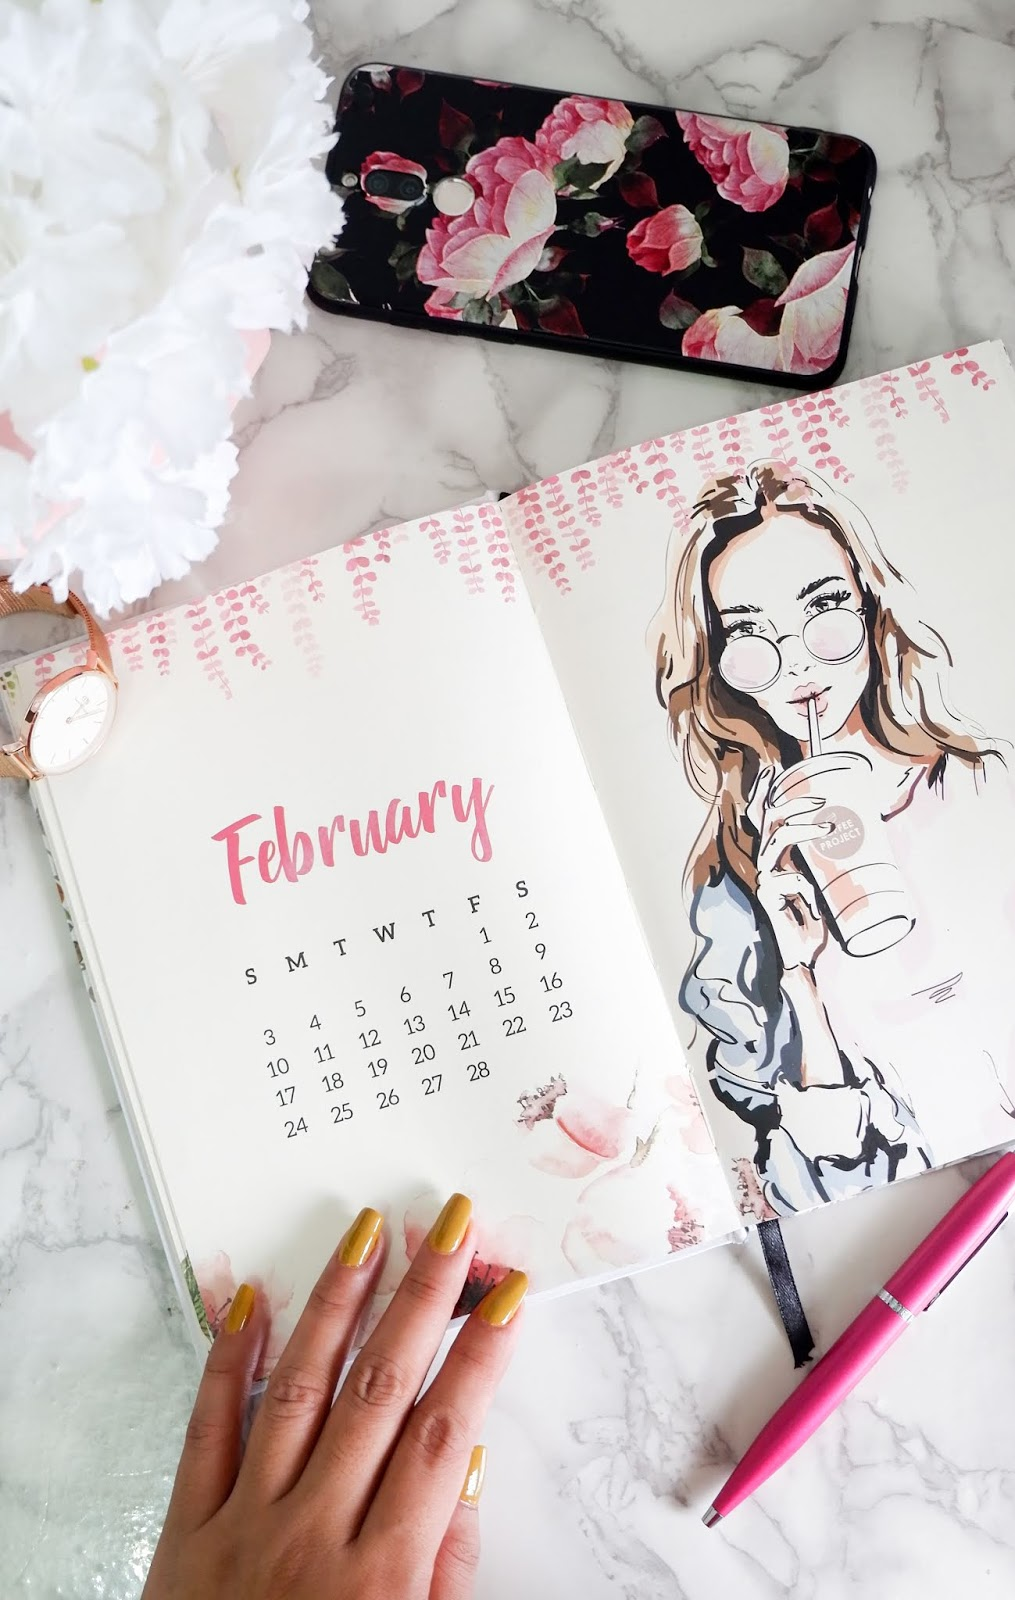 FEBRUARY GOALS - SELF CARE